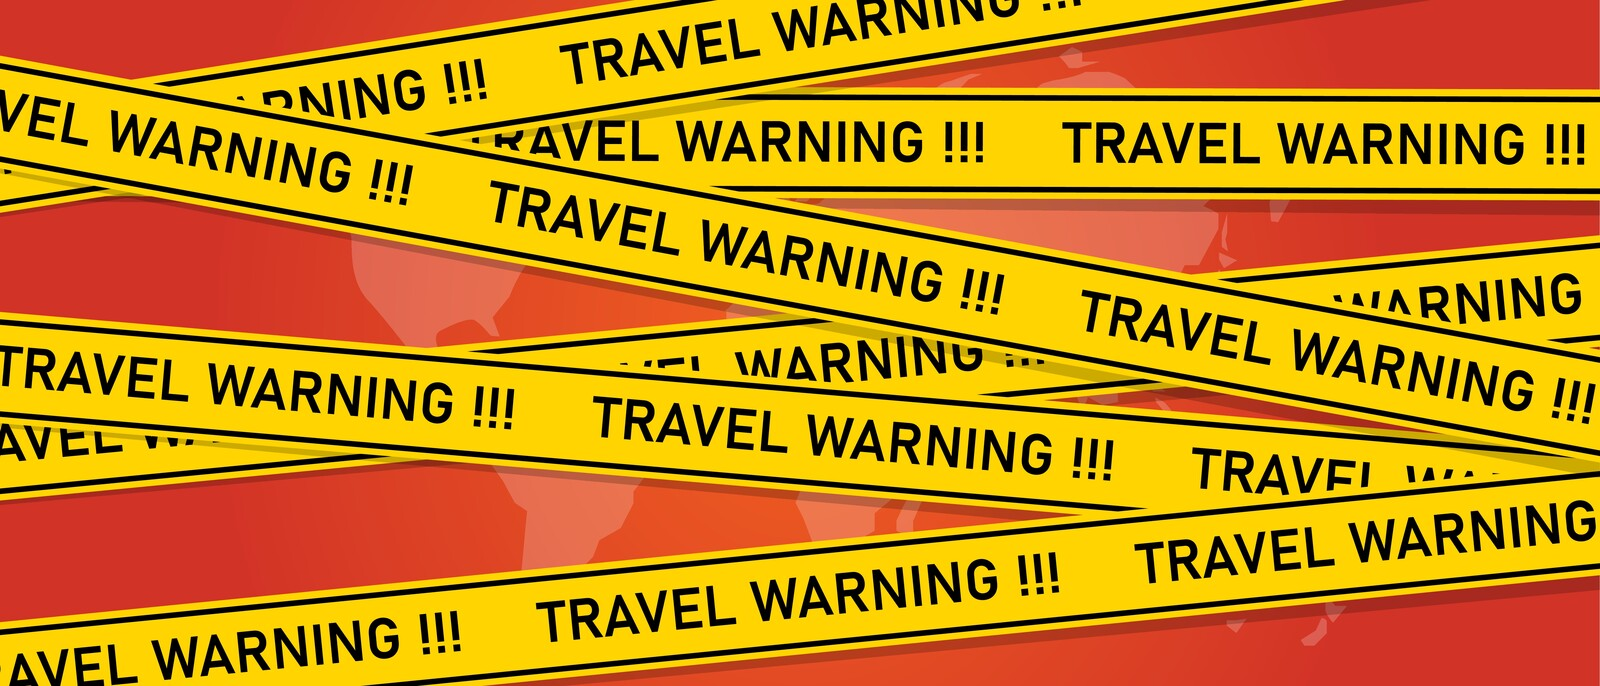 "Red background of an outline of a map of the world with yellow tape criss-crossing over it stating ""travel warning!!!"""